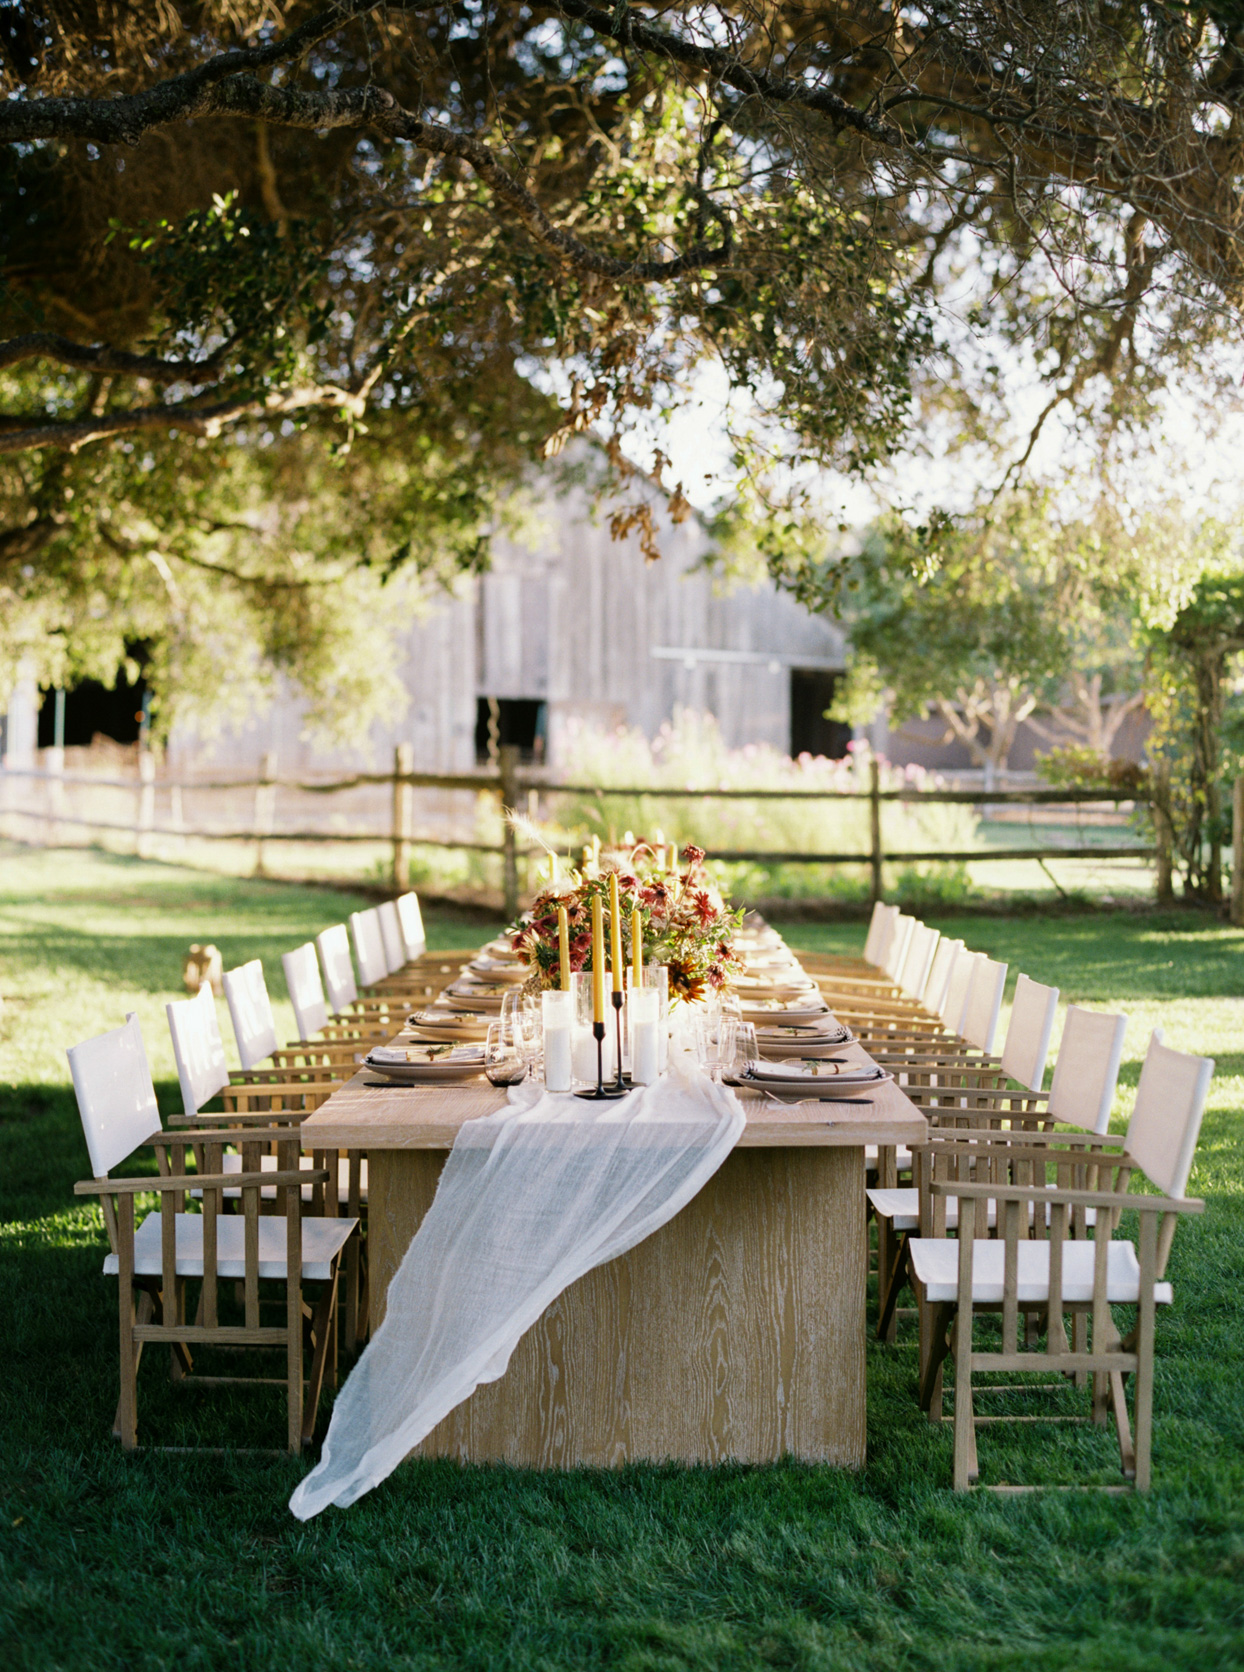 long wooden table set up in grass for rehearsal dinner